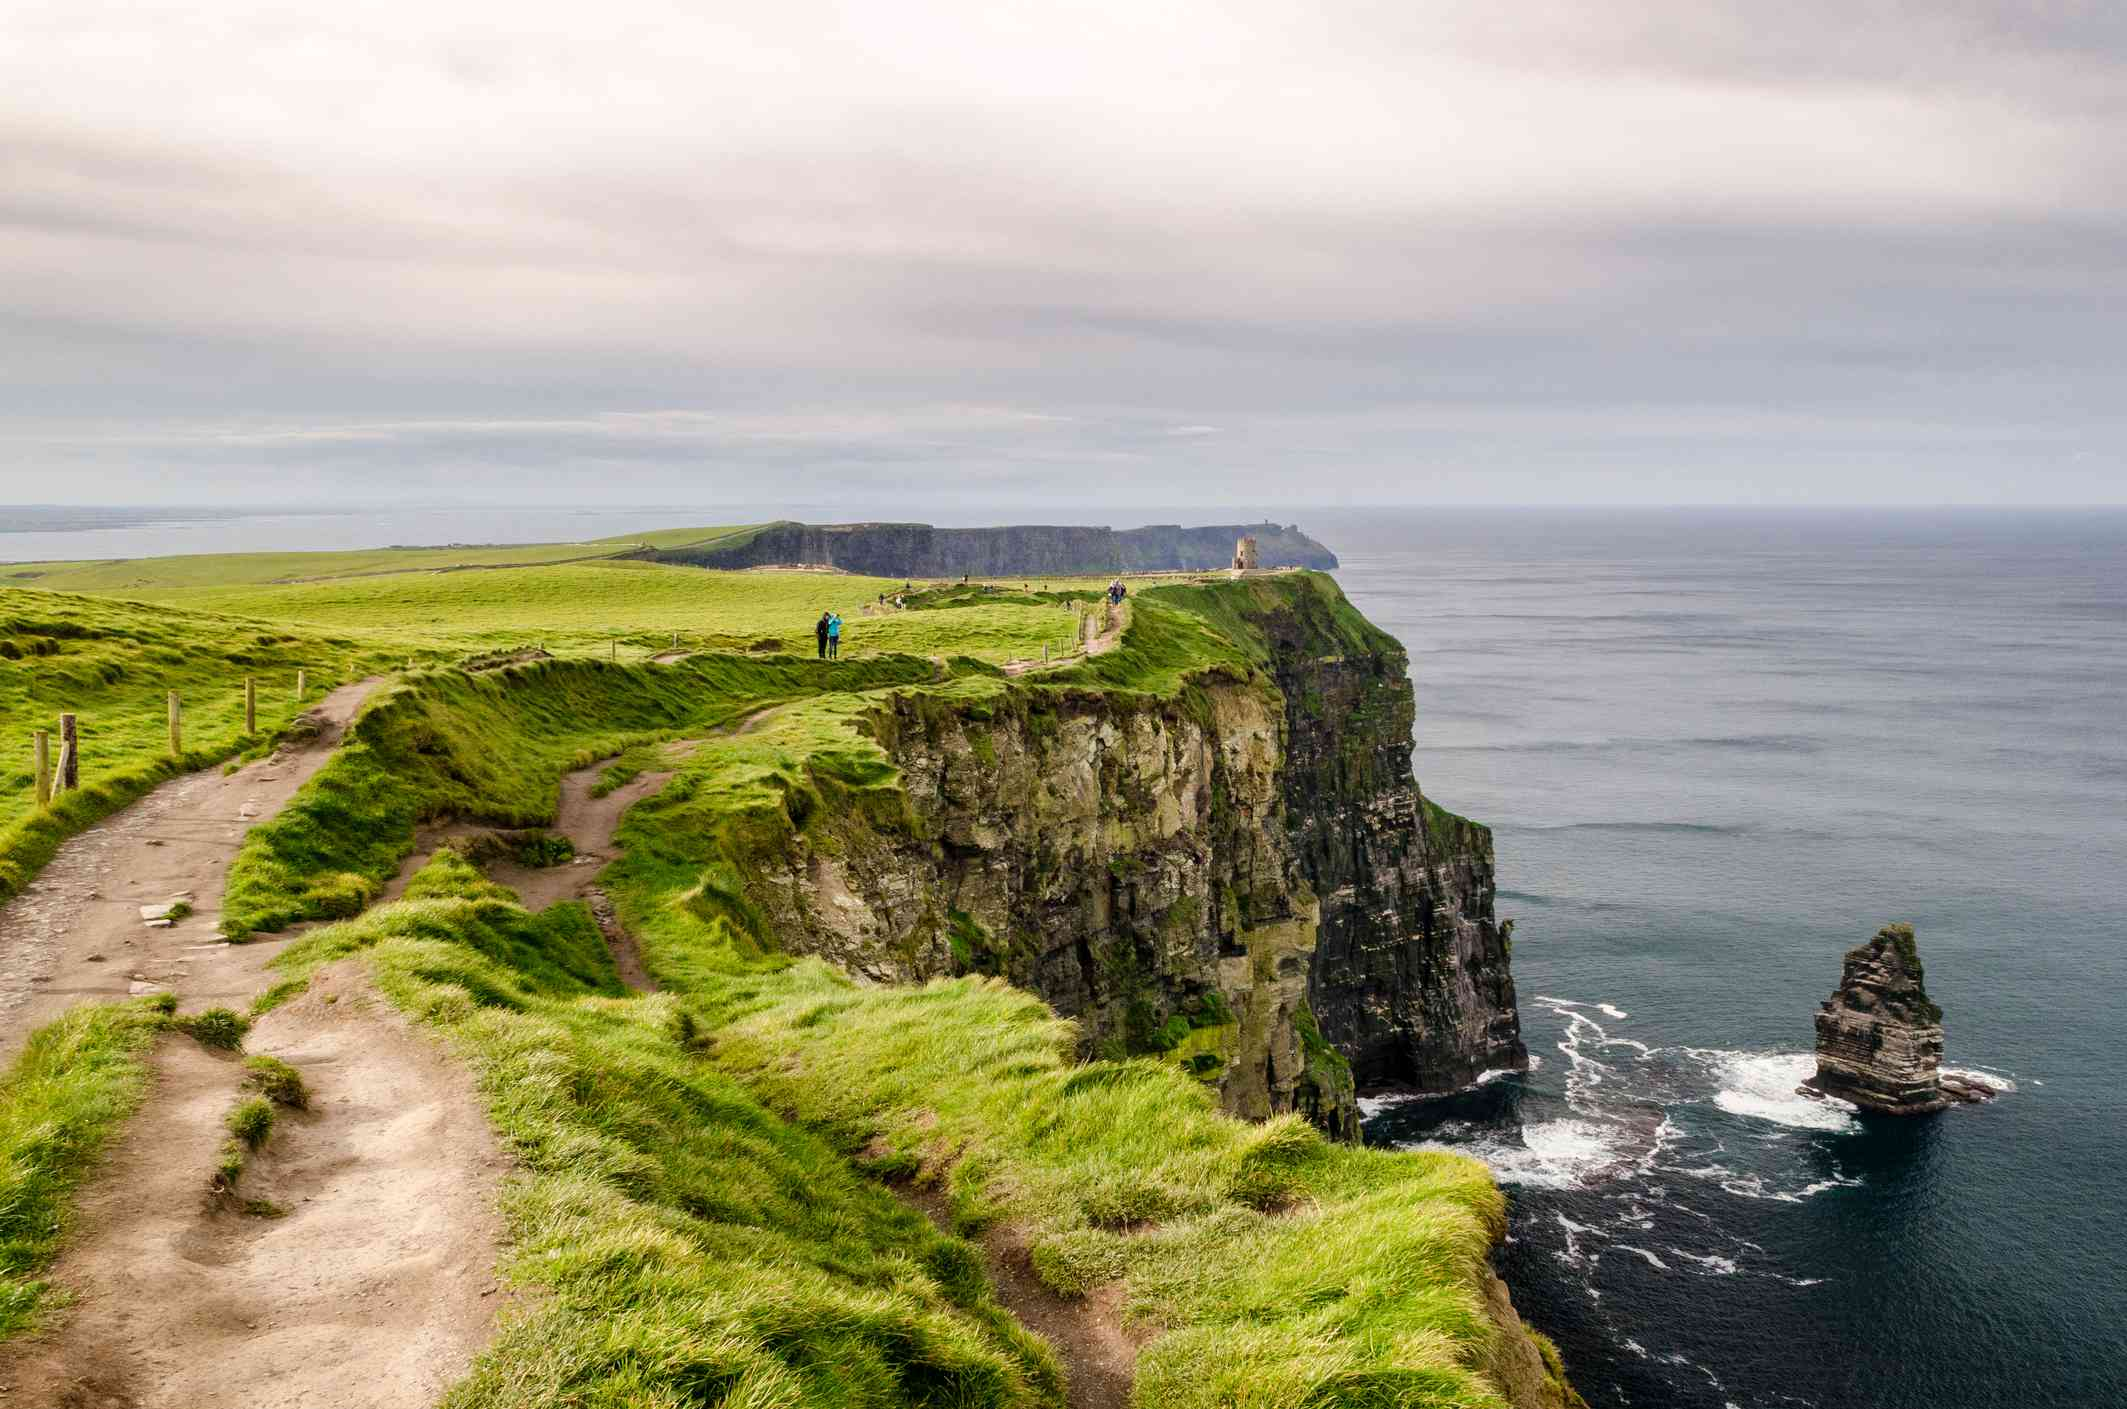 The grass-covered land above the Cliffs of Moher on a cloudy day in County Clare, Ireland